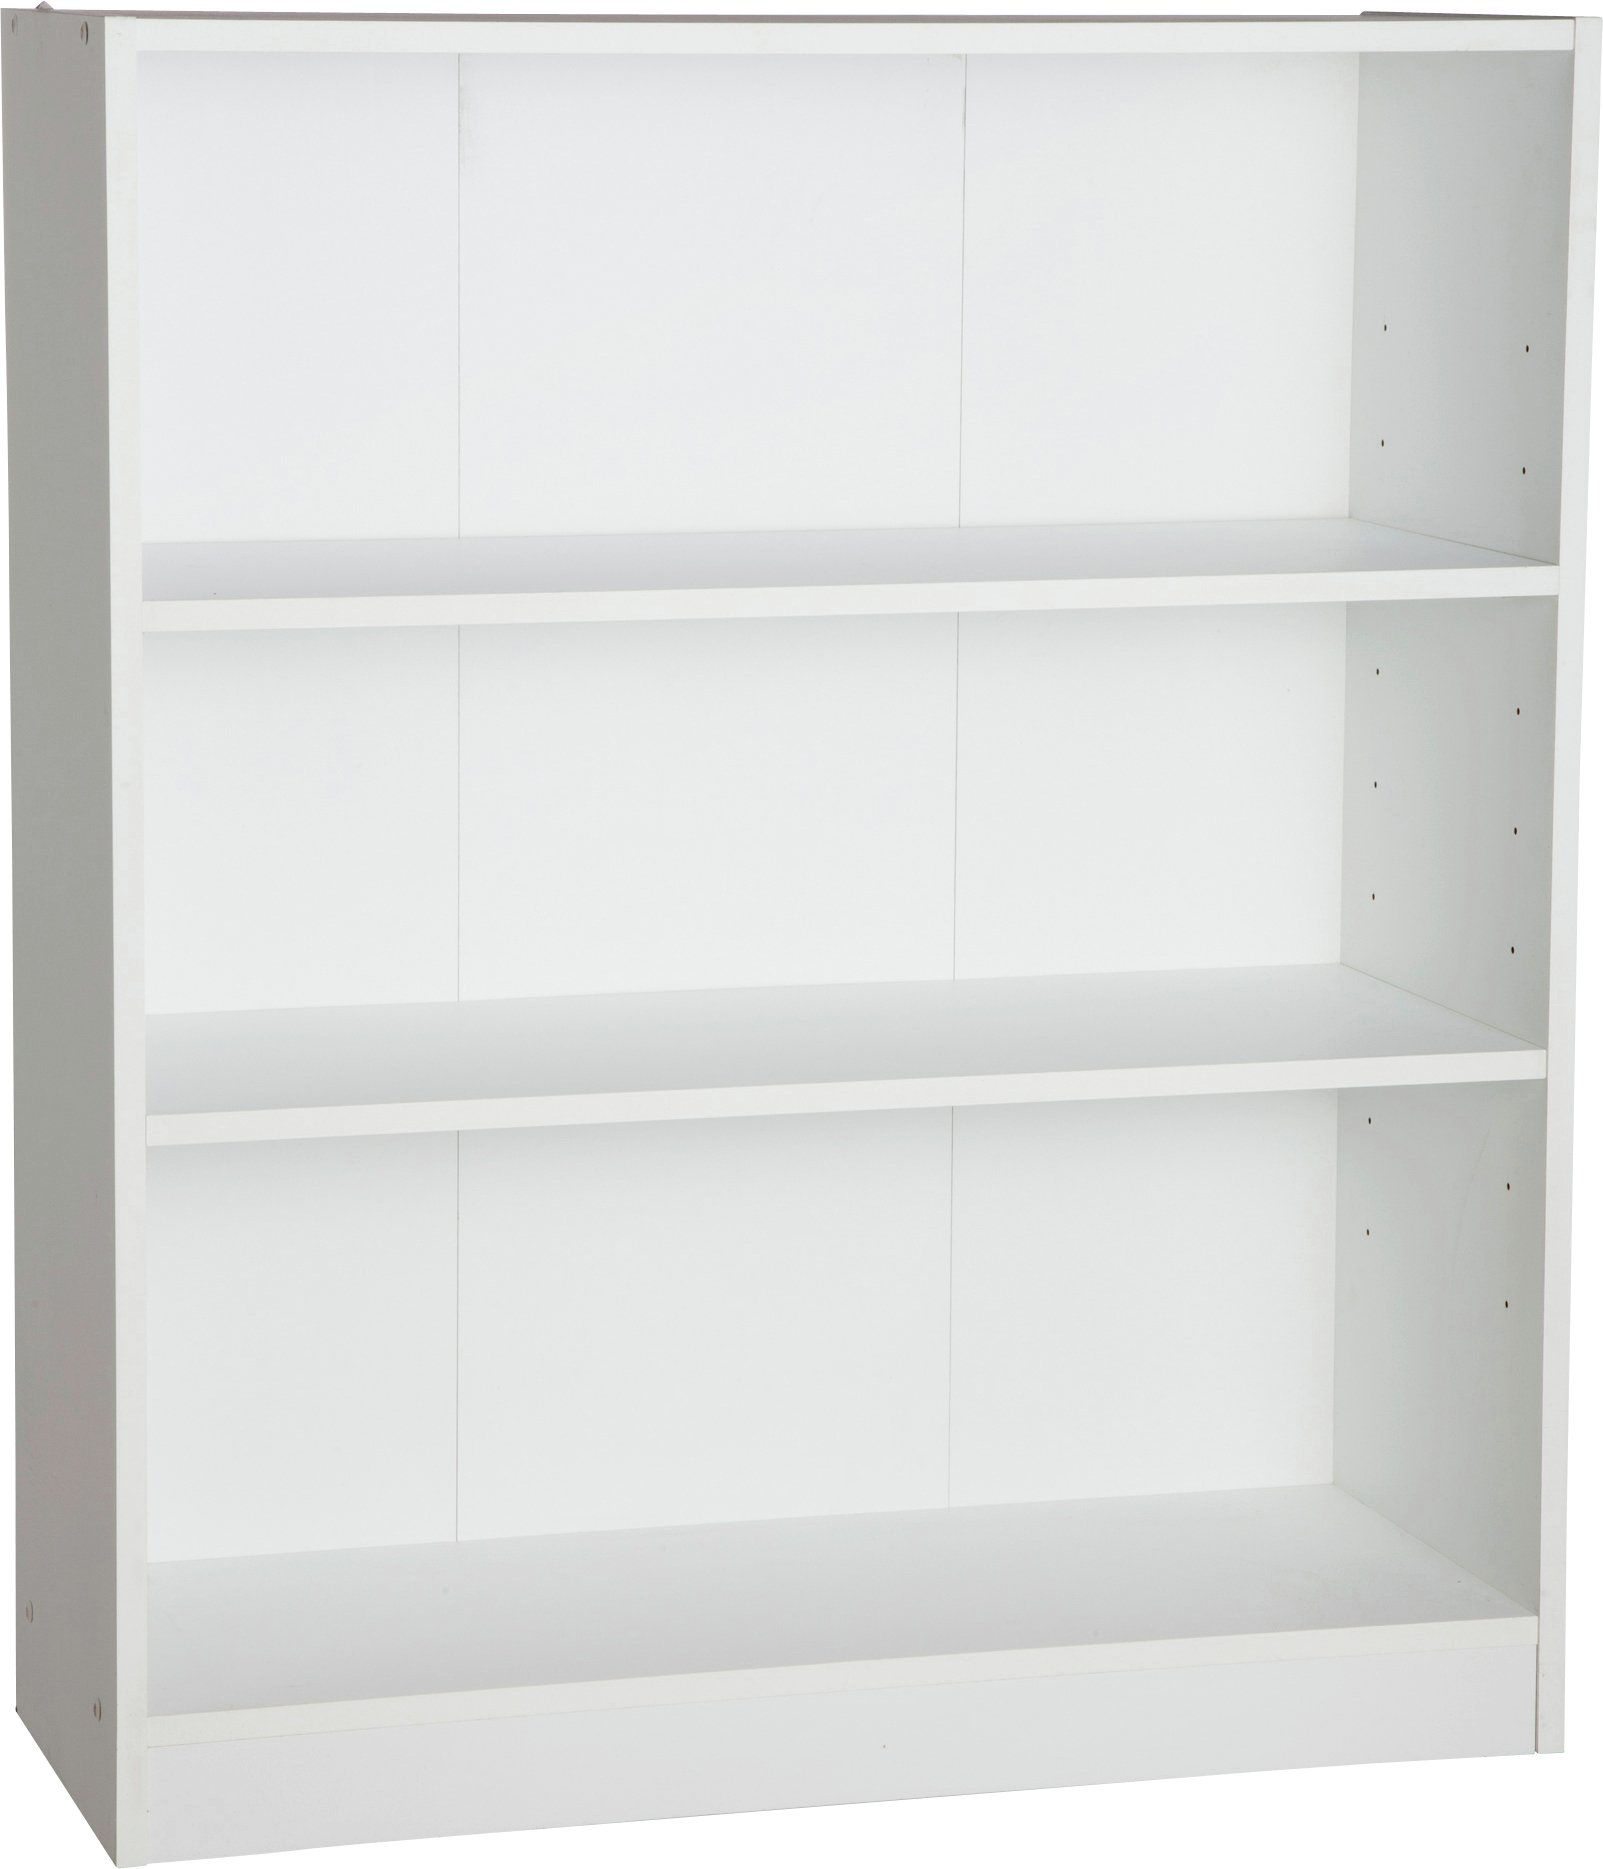 Buy Home Maine 2 Shelves Small Extra Deep Bookcase White At